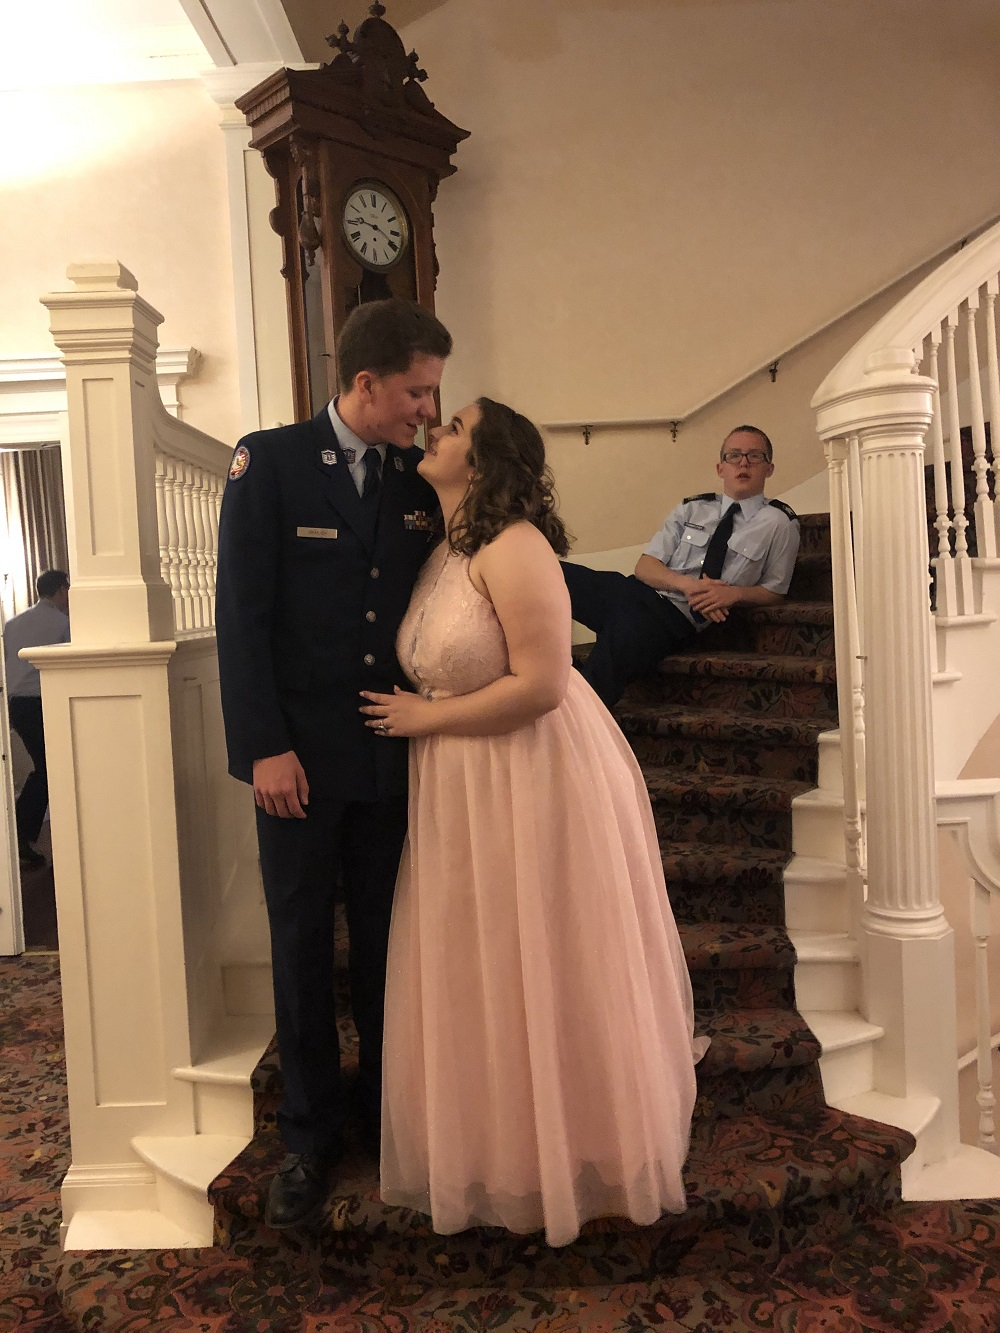 Alpha Flight Commander Master Sergeant Matt Grailich and date, Kaitlyn Roberts. With photobomb from Zander Fairbrother, Ball Royalty